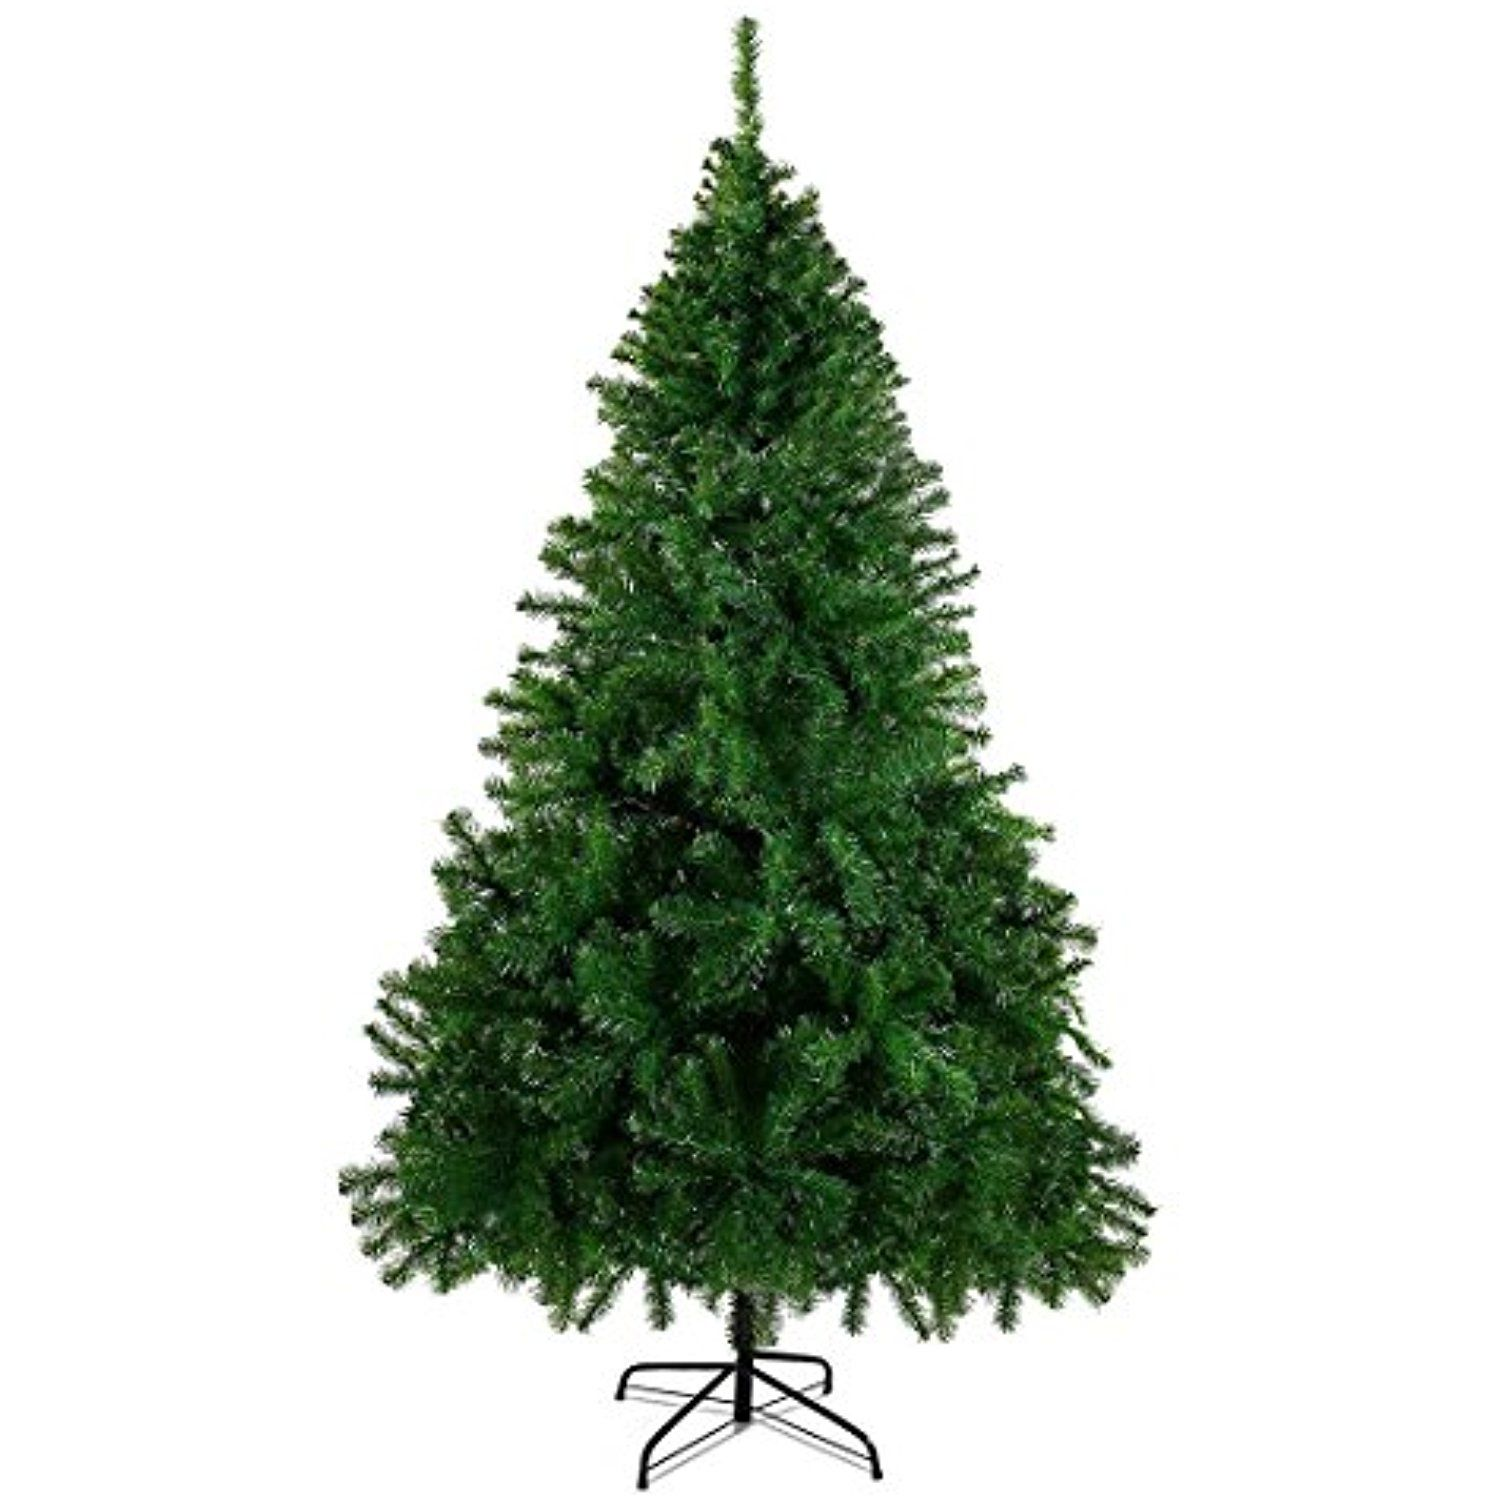 Christmas Tree Cheerson 7 5 Ft Easy Assembly Artificial Christmas Tree Ever Green With Stan Pine Christmas Tree Best Artificial Christmas Trees Christmas Tree